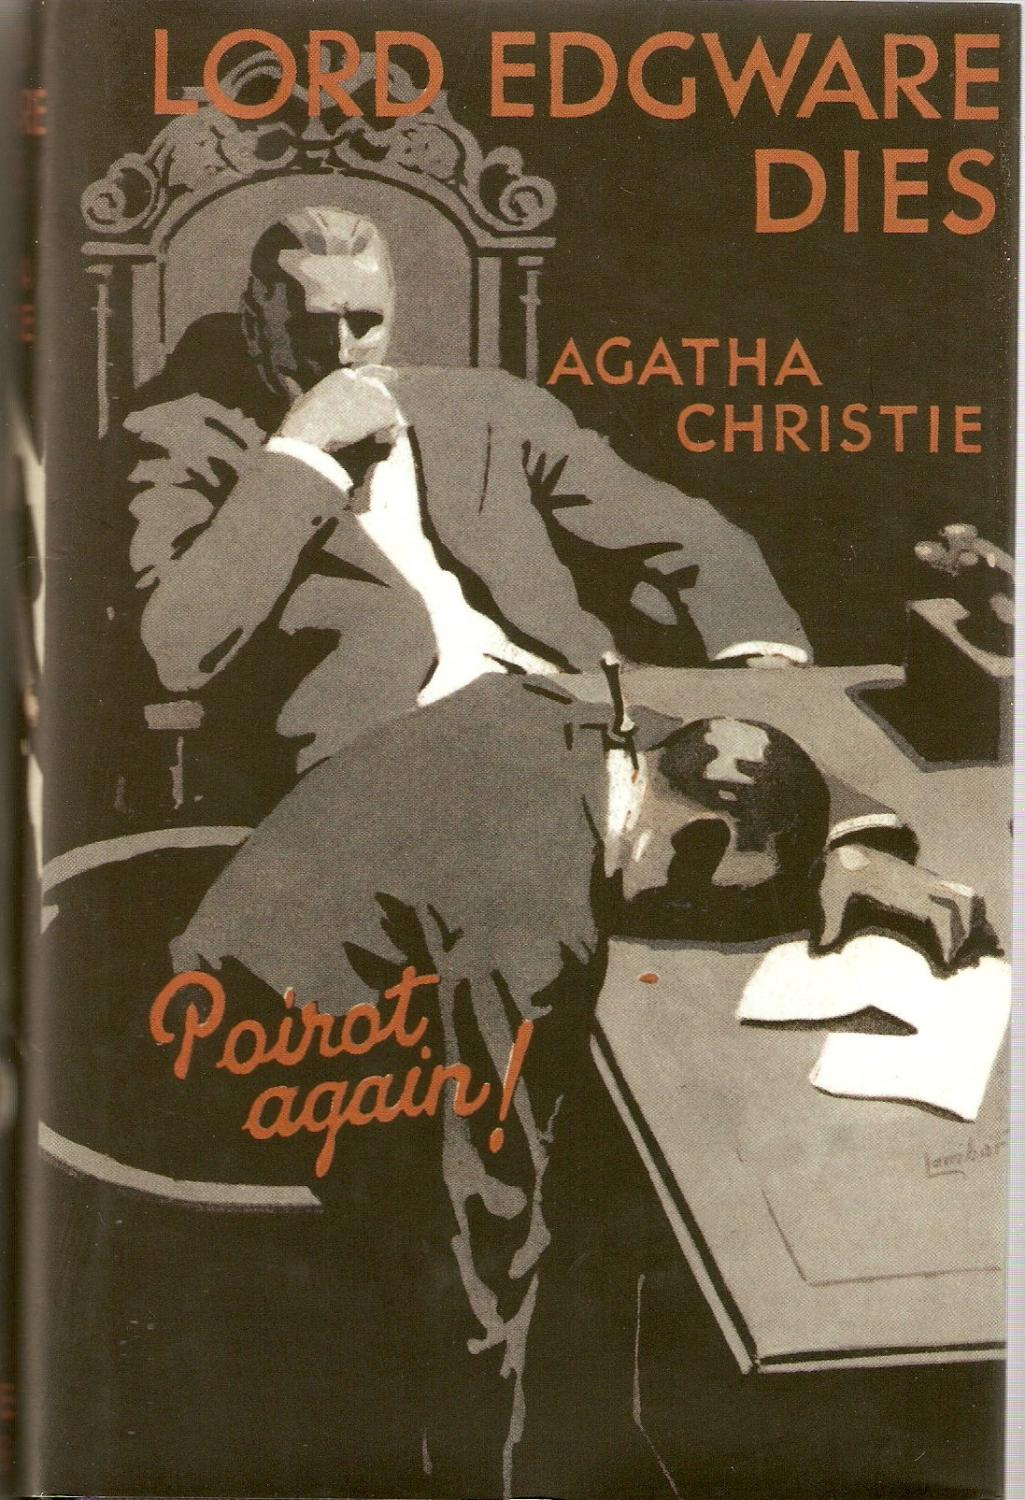 a synopsis of the novel third girl by agatha christie Immediately download the third girl summary, chapter-by-chapter analysis, book notes, essays, quotes, character descriptions, lesson plans, and more - everything you need for studying or.